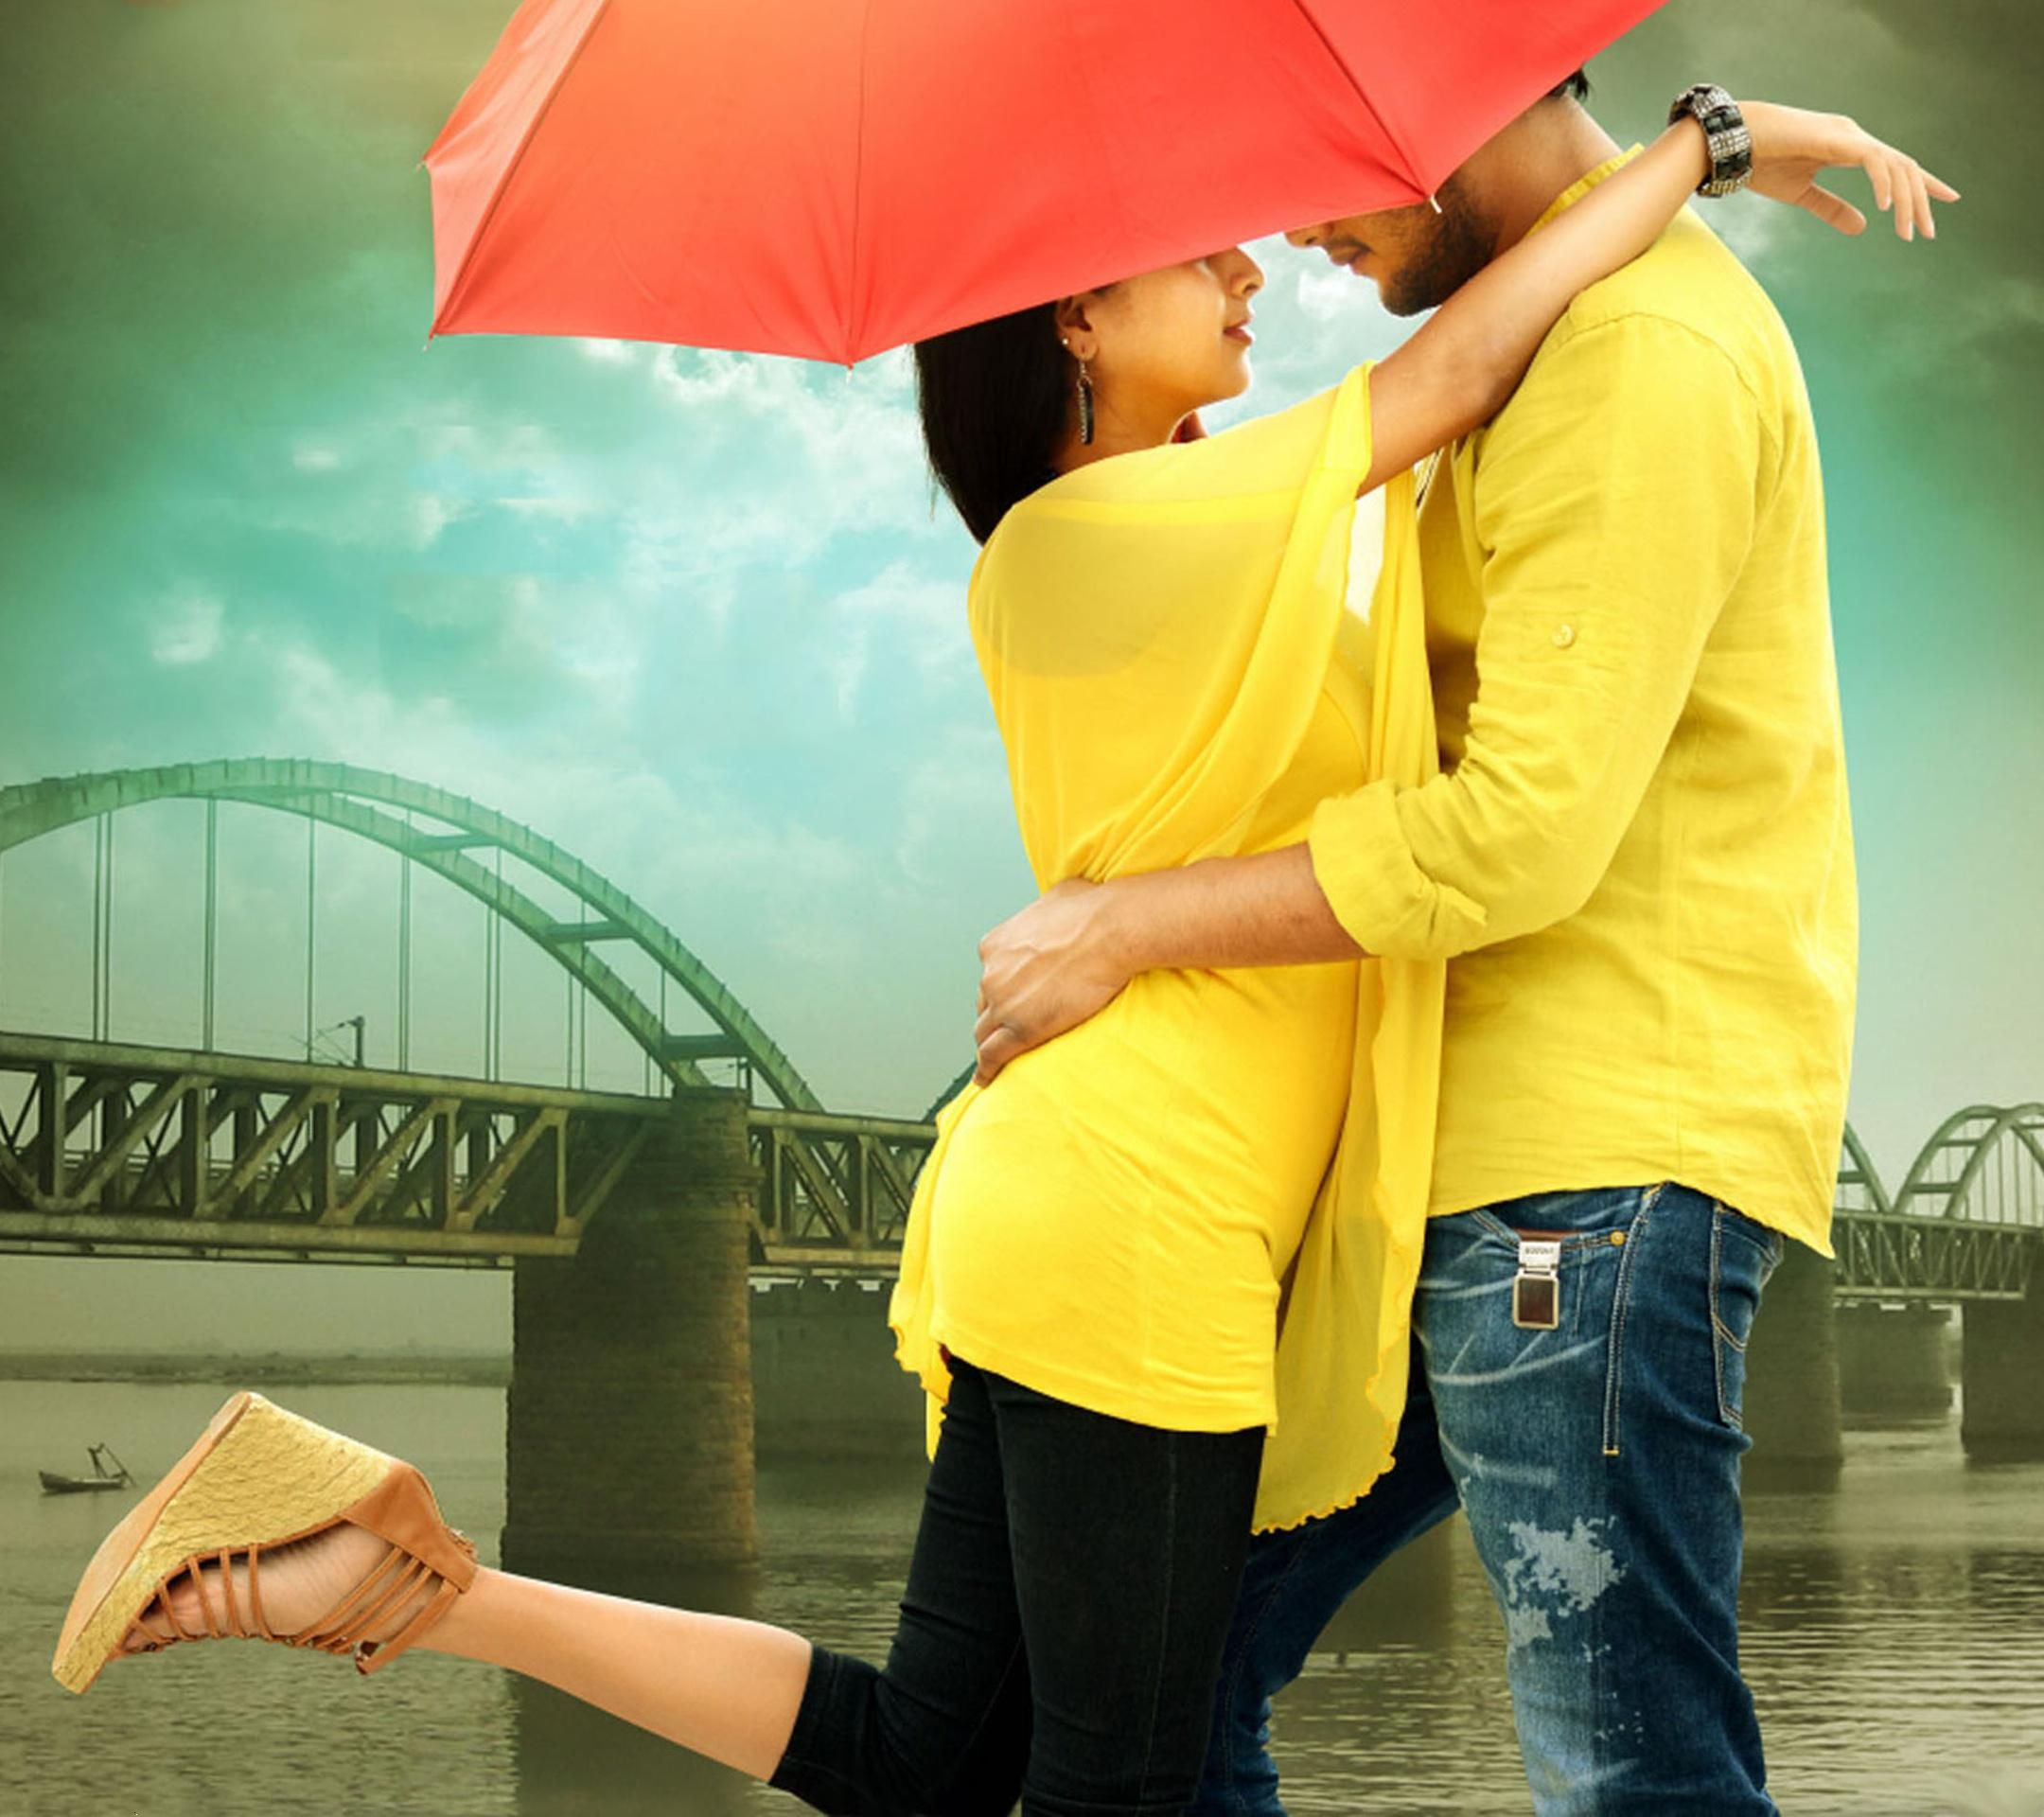 Page-3 of Romantic couple wallpapers - free love wallpapers for